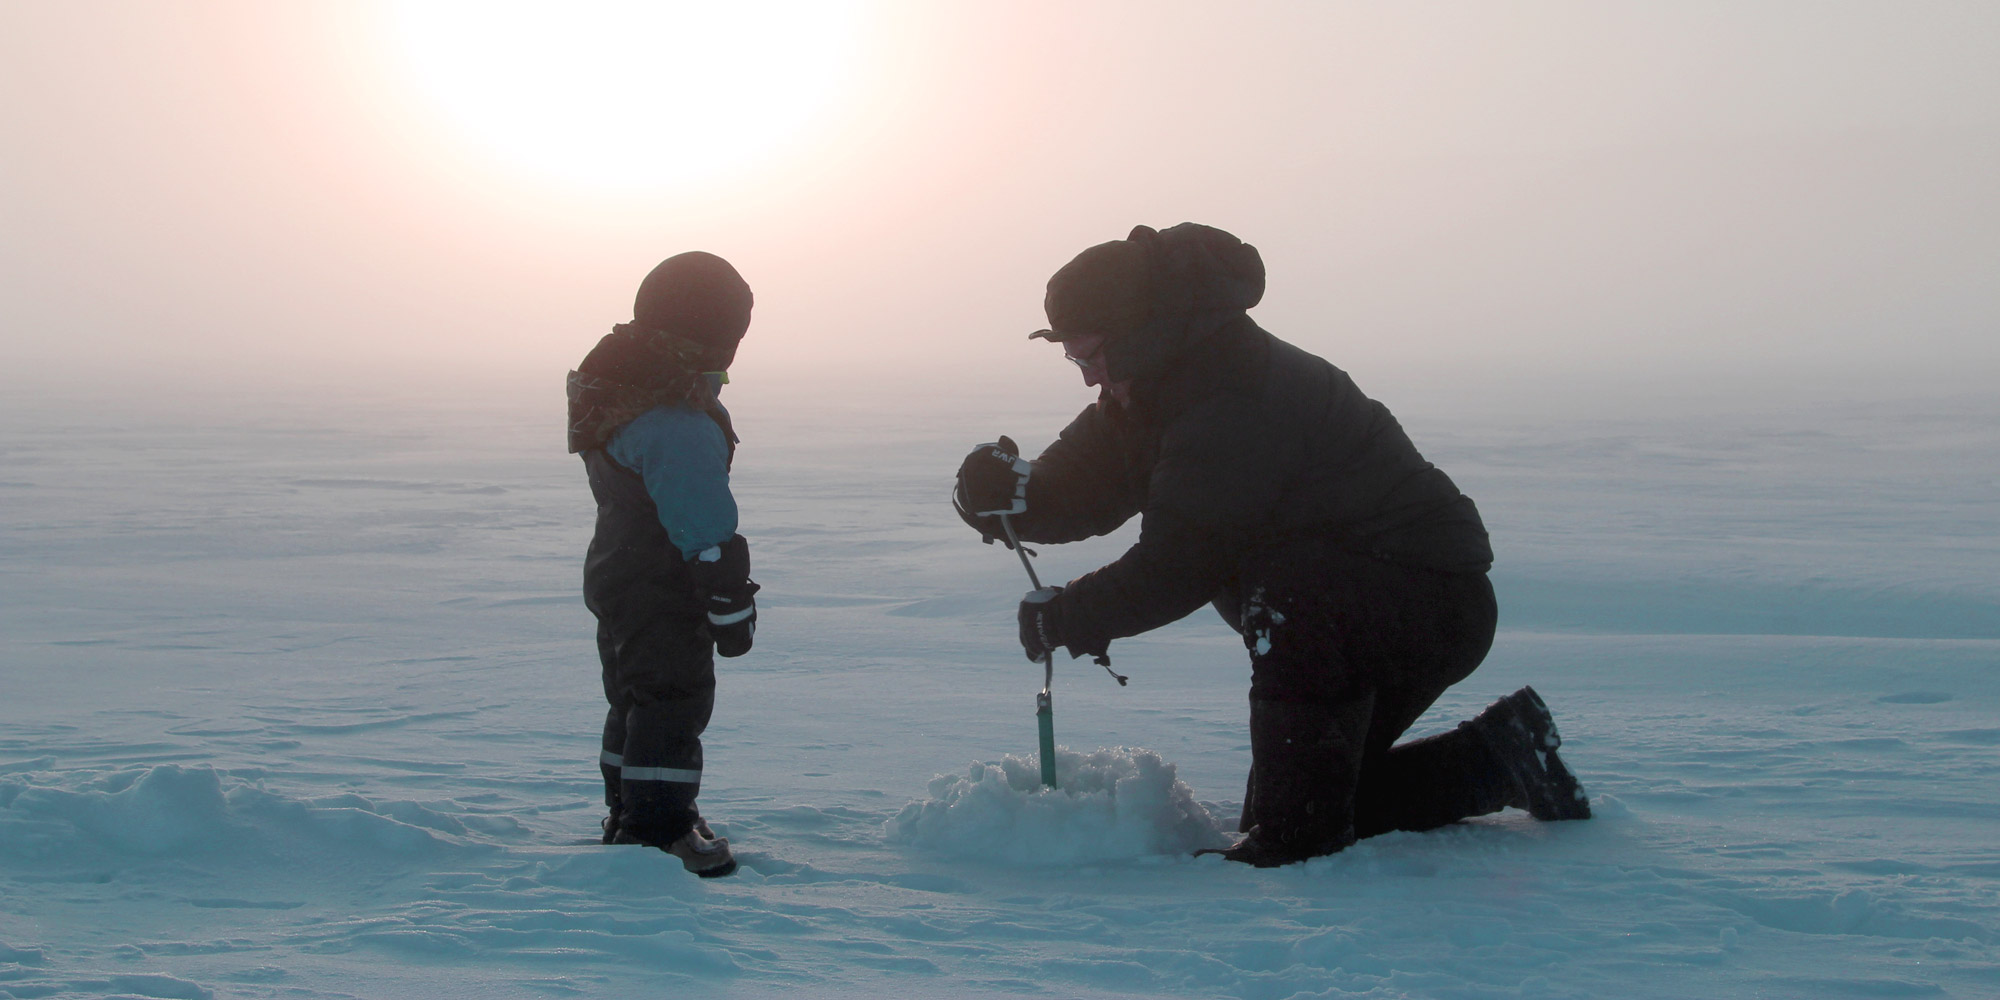 Ice Fishing - father and son. Copyright: Vistit Innherred